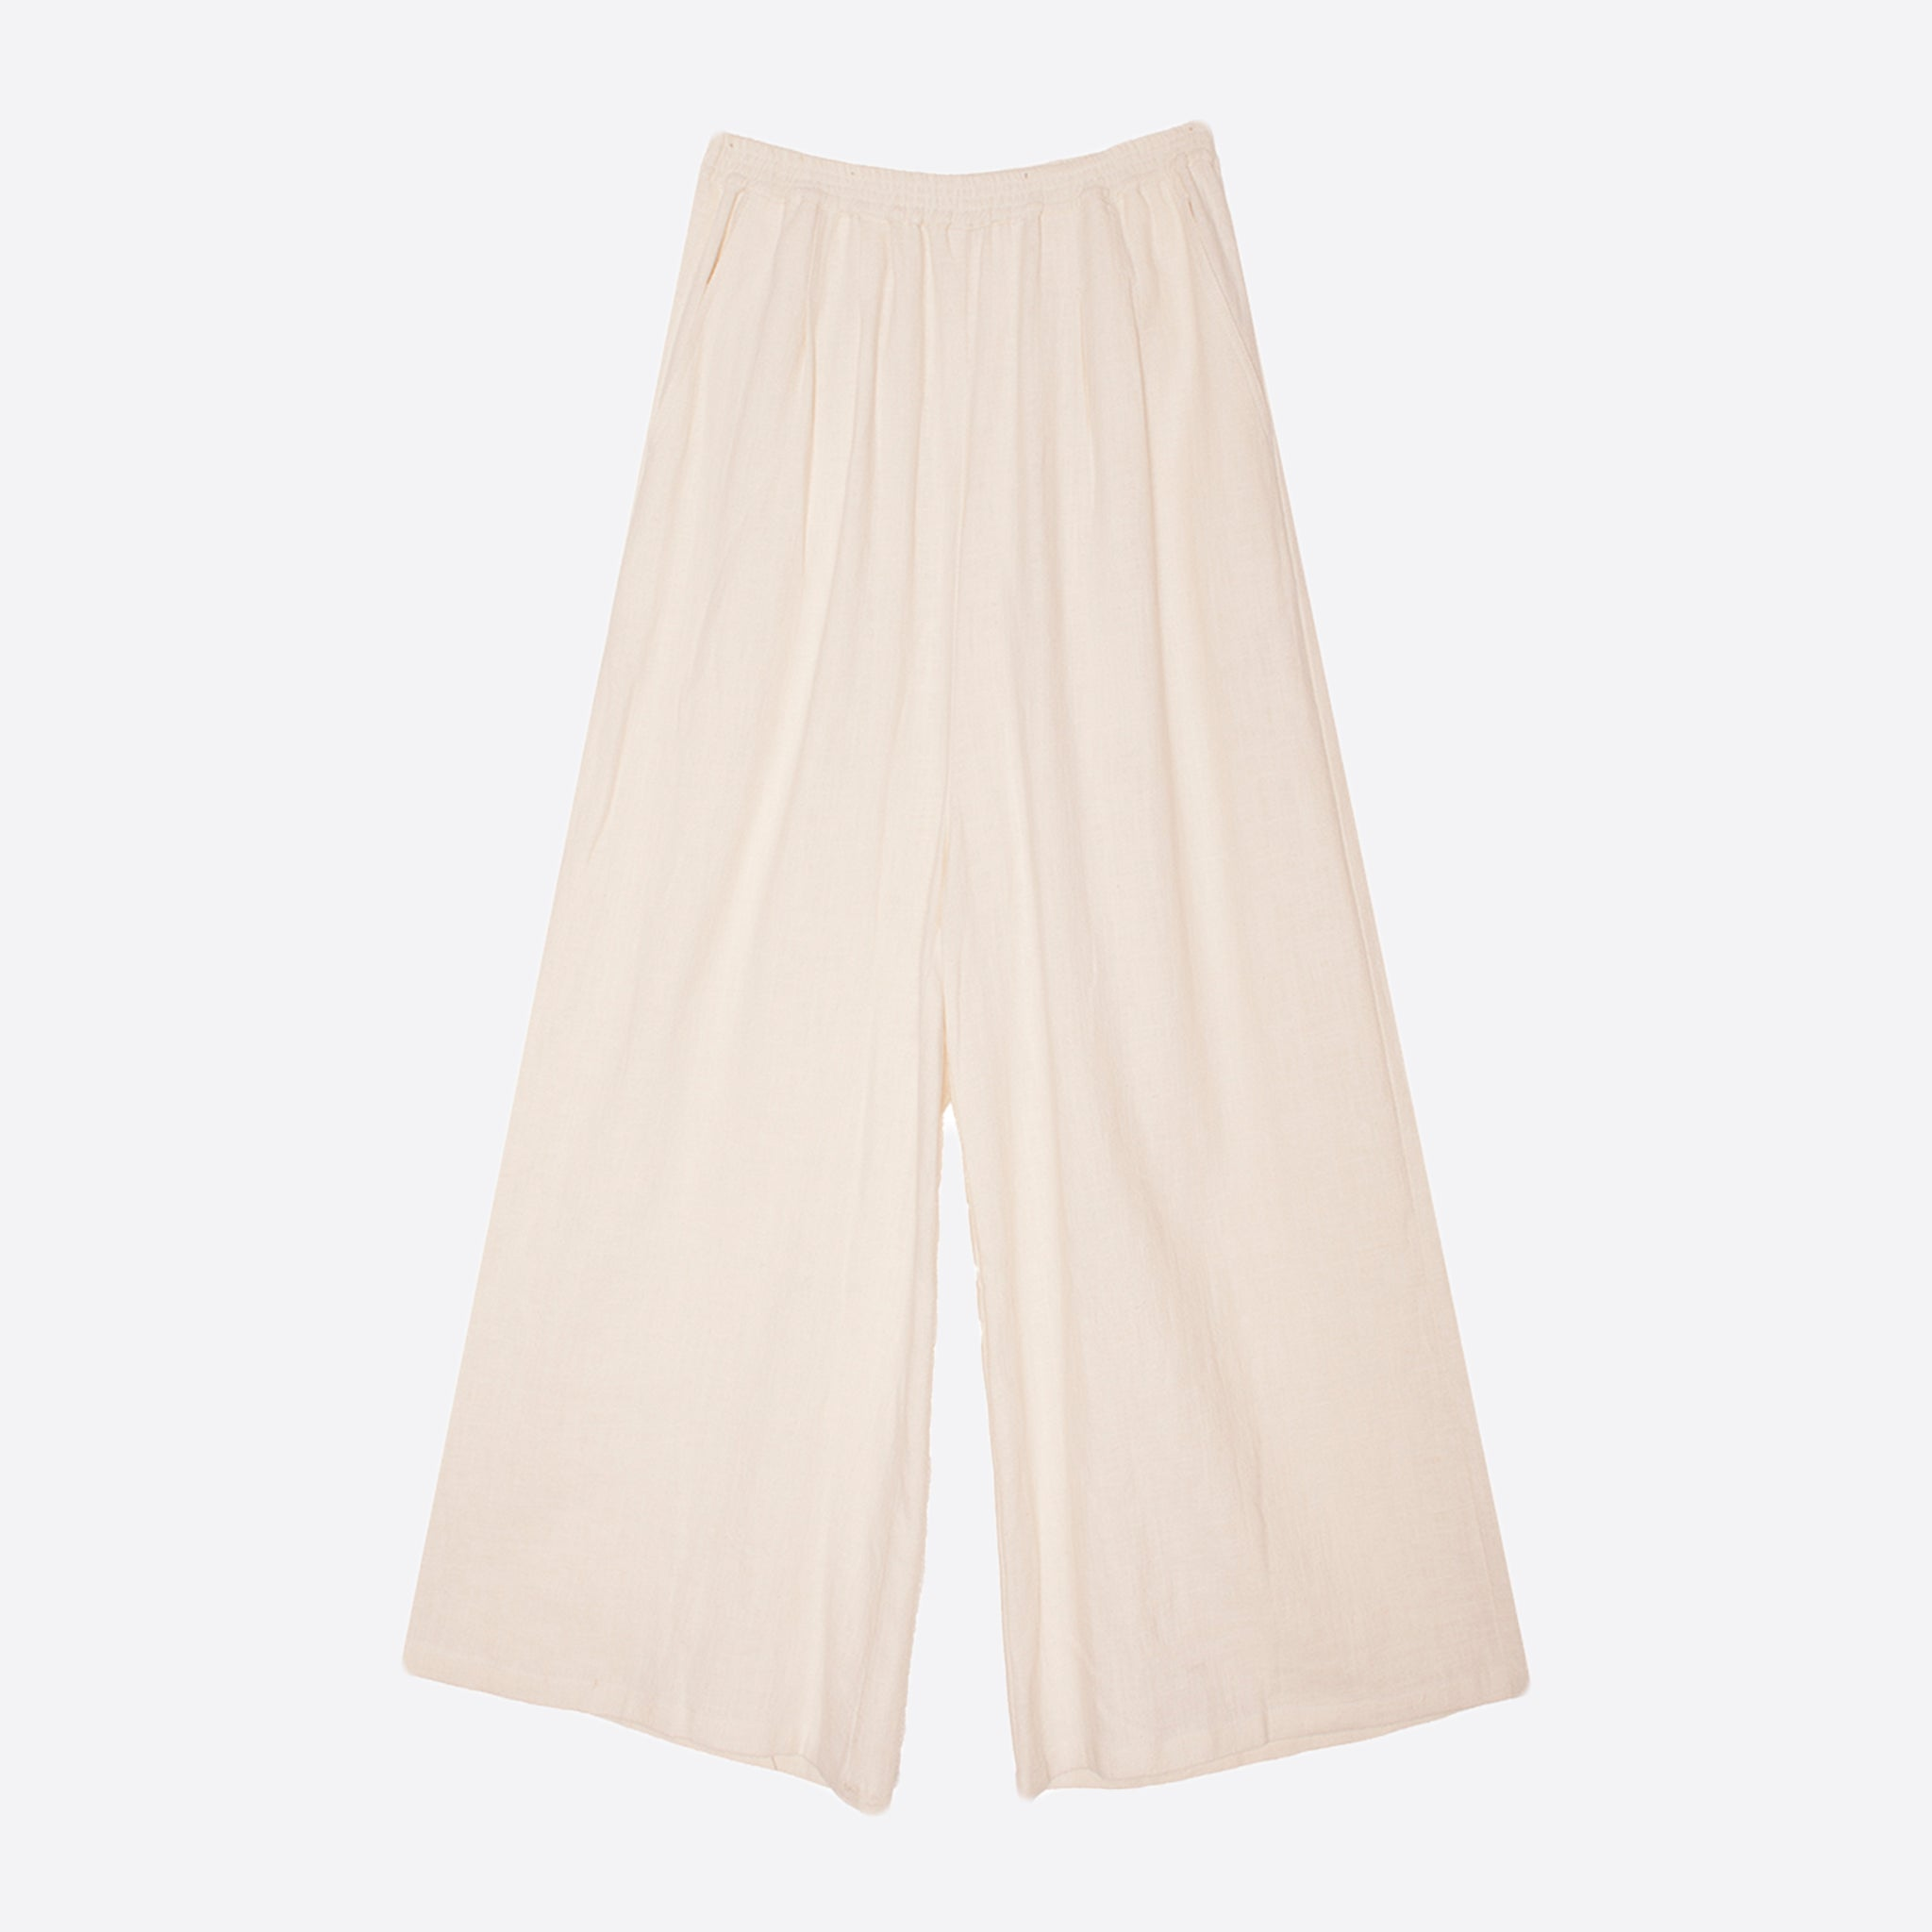 LF Markey Lachie Linen Trousers in Ivory